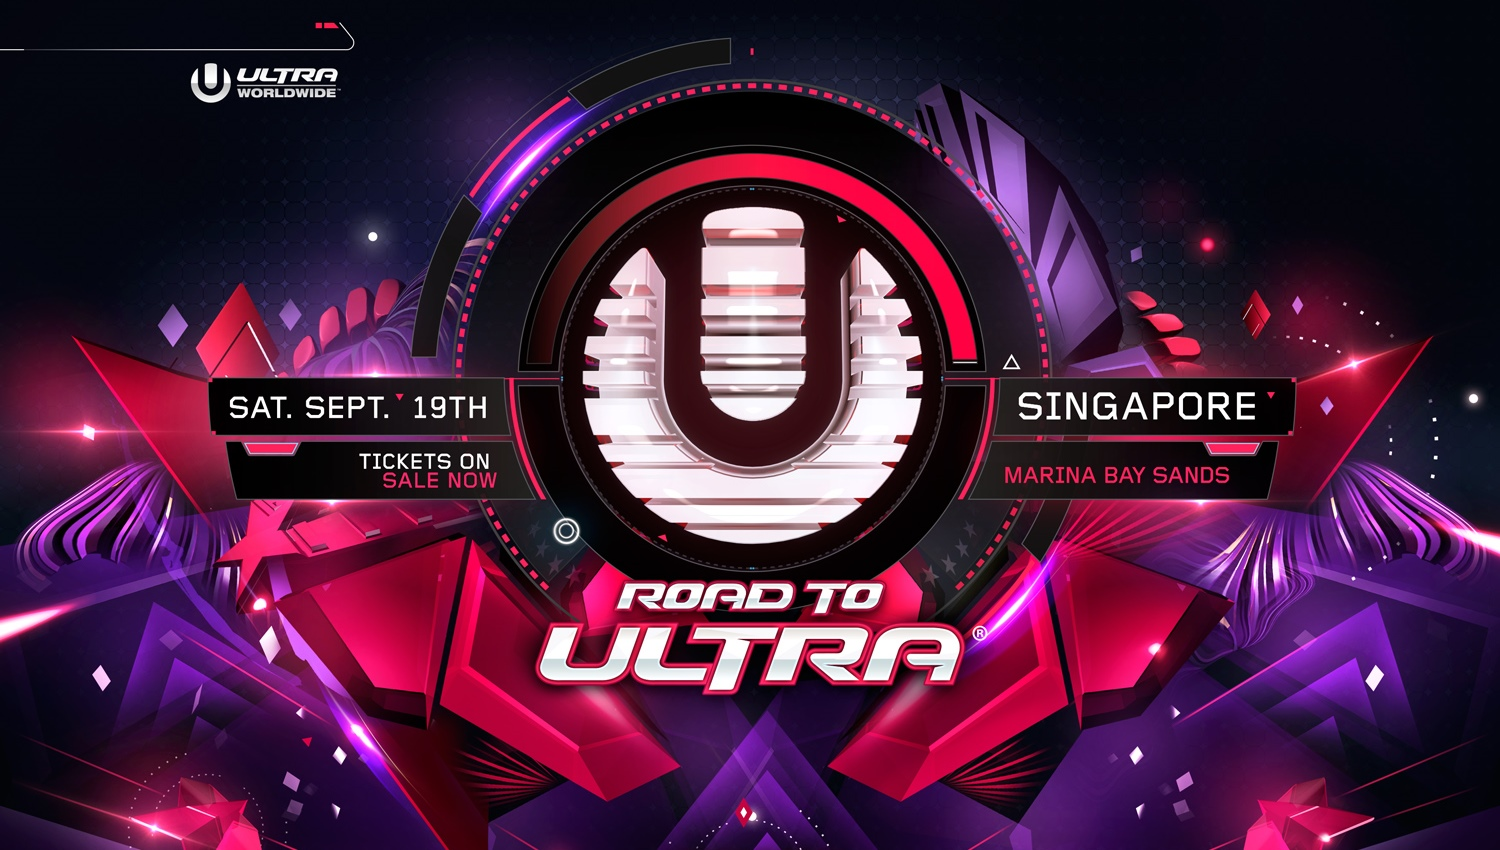 Ultra Singapore introduces first phase of line-up